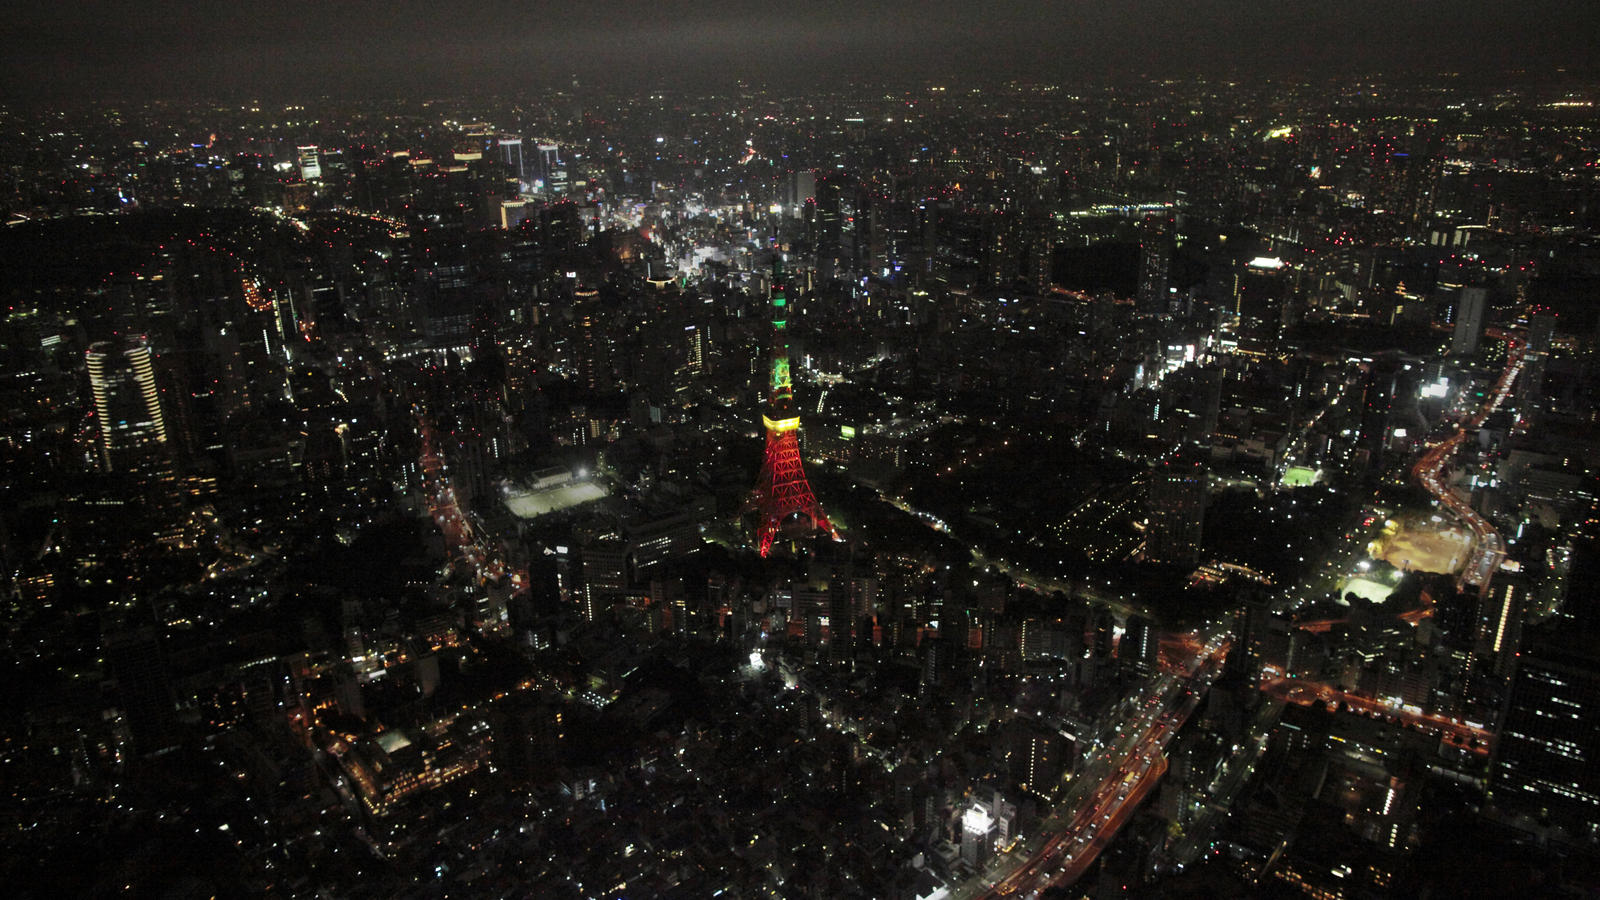 Tokyo Tower from high above